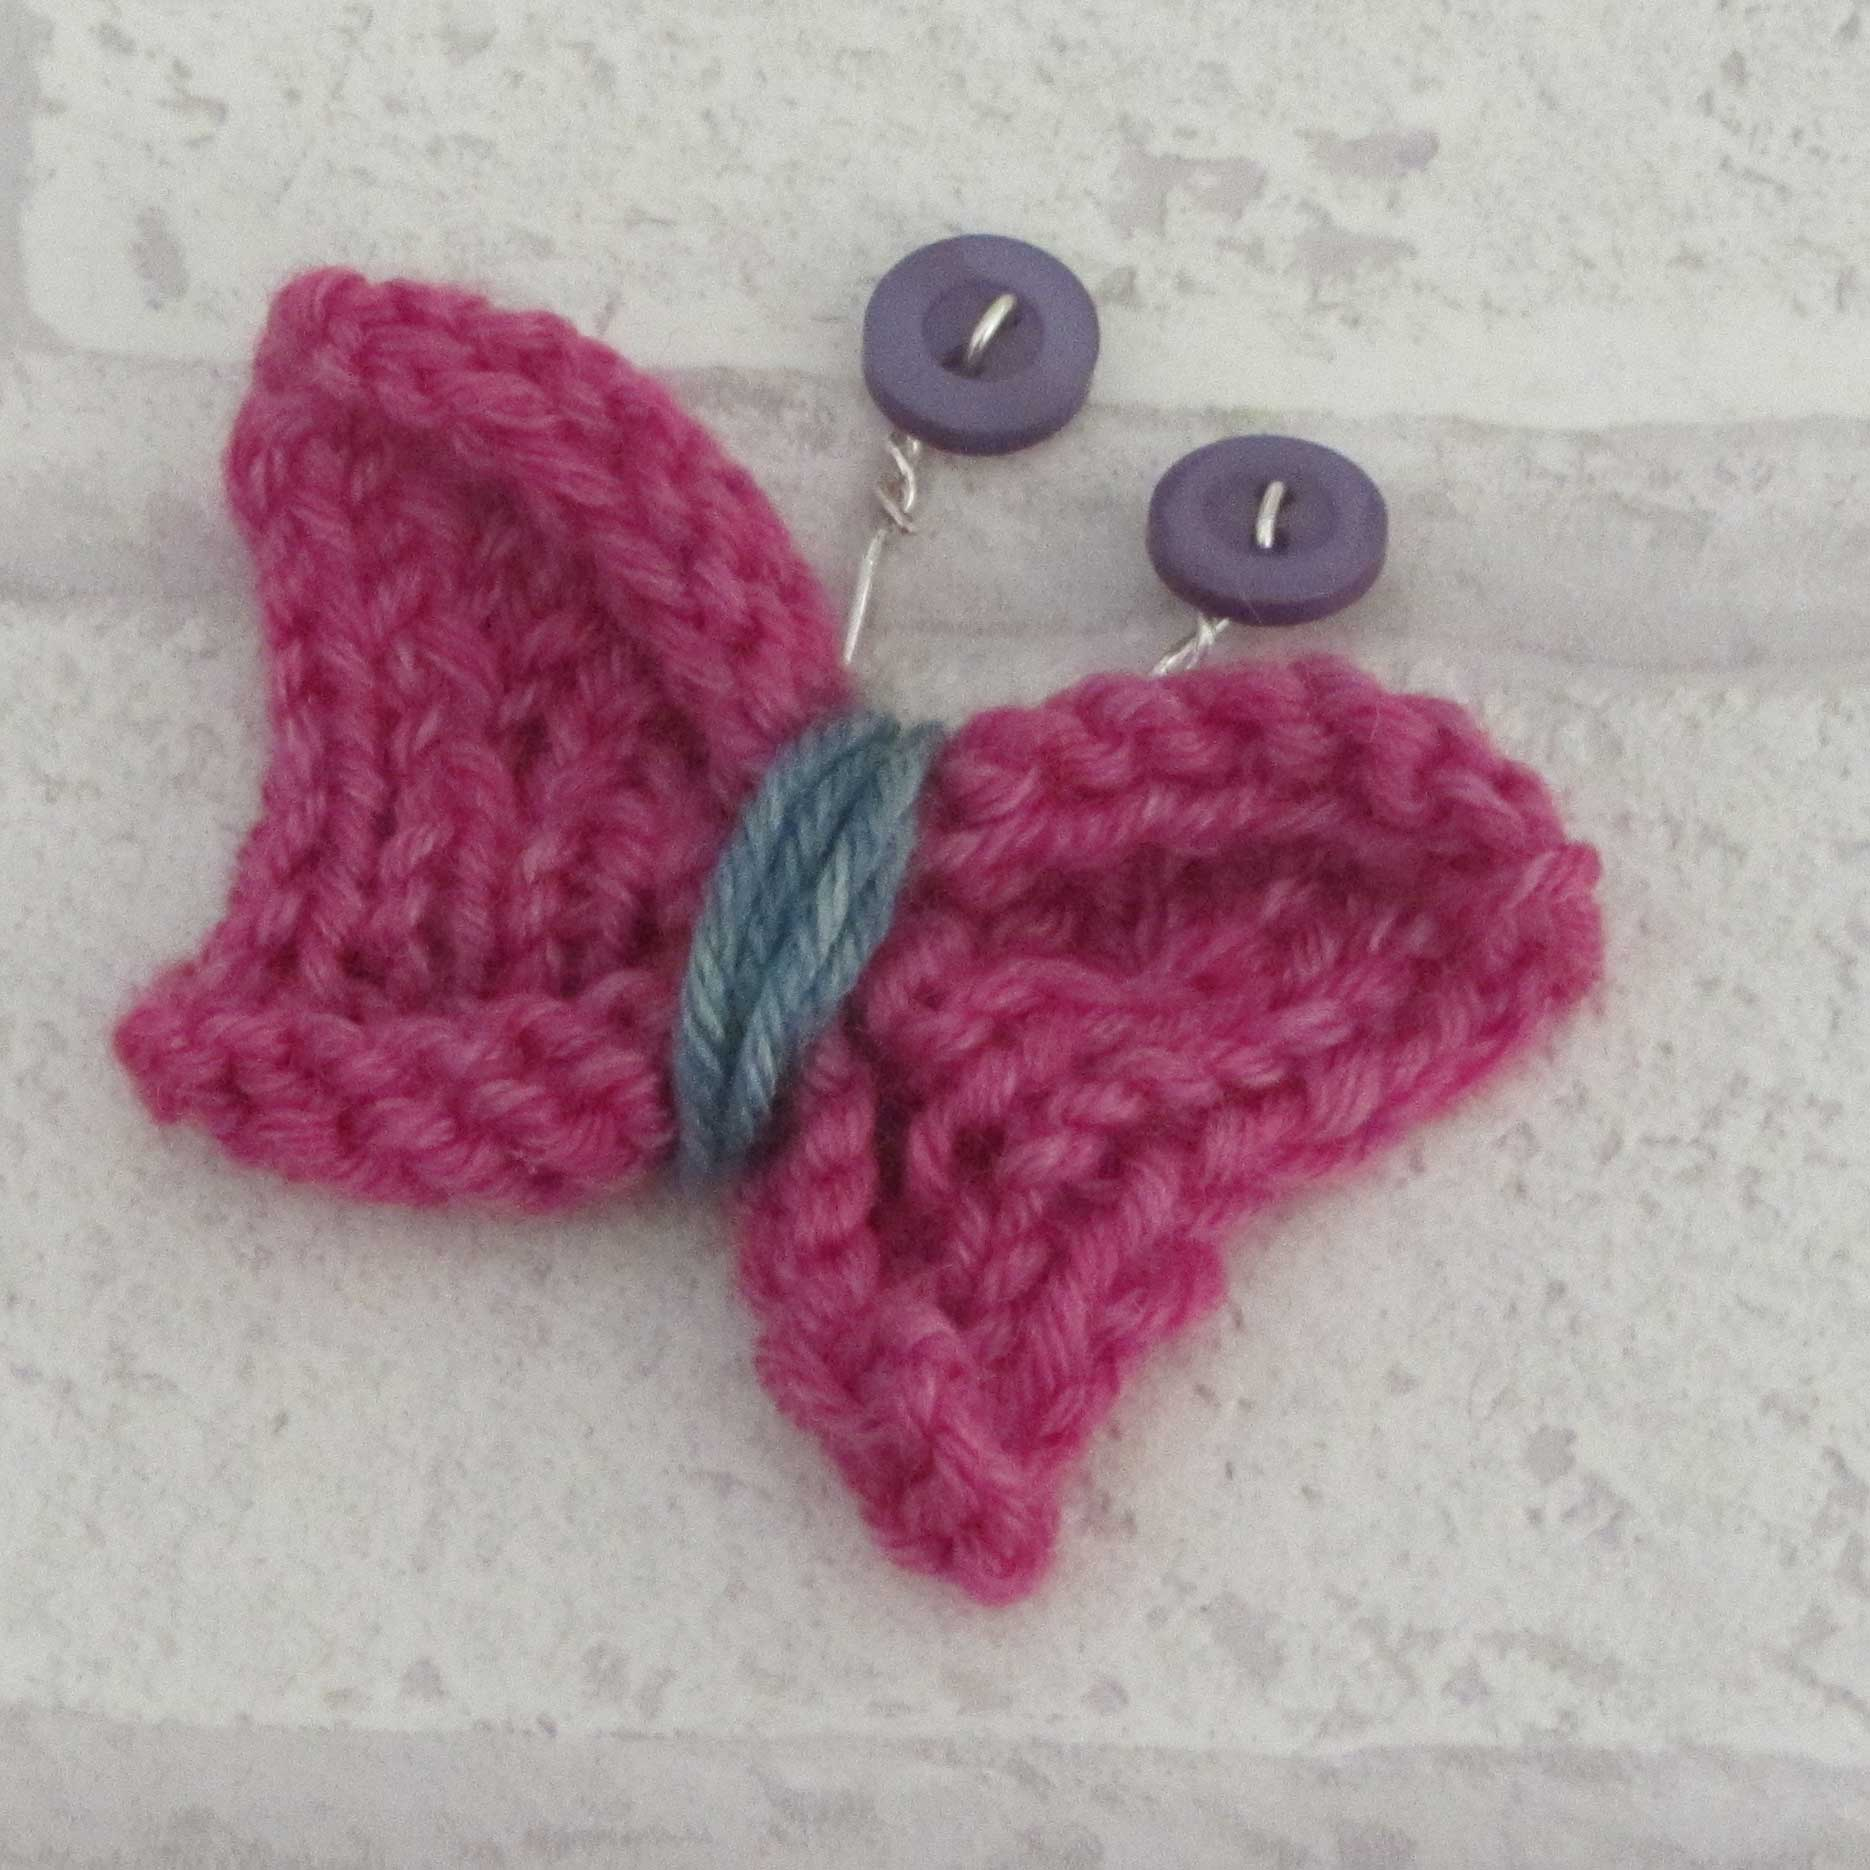 Knitting Pattern Butterfly : Super cute knitted butterfly tutorialjane burns jane